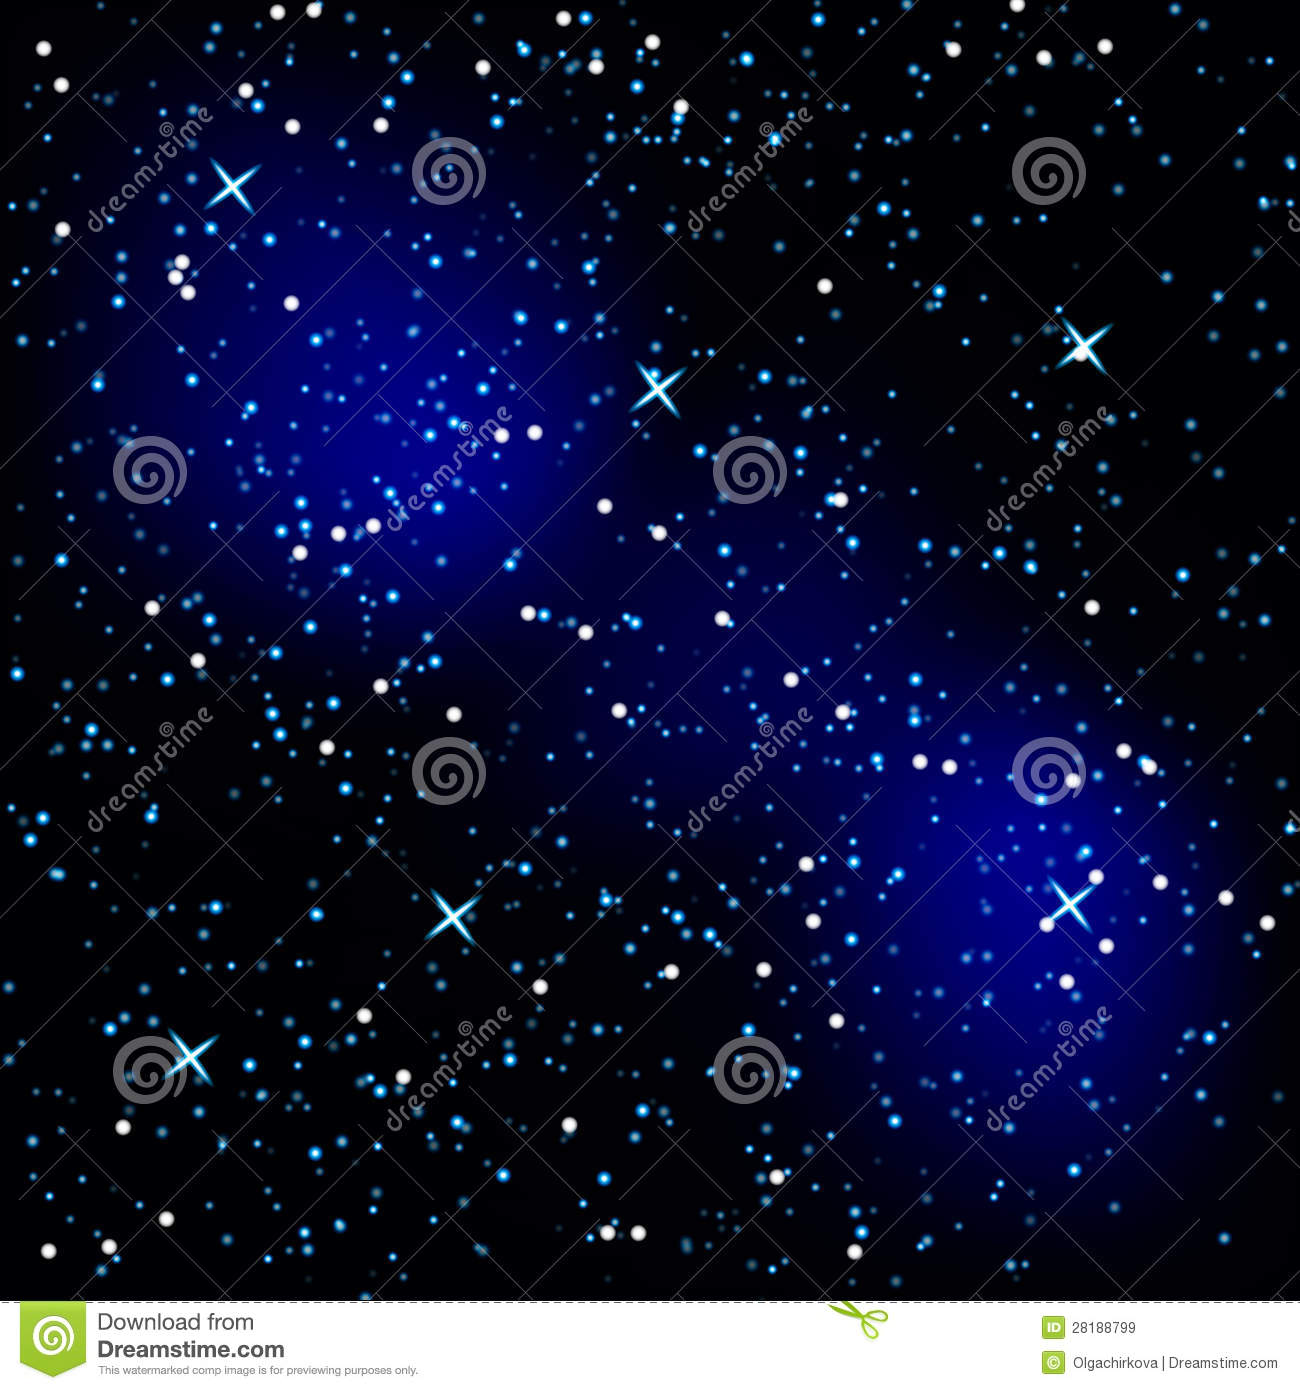 Background in the form of a starry sky.